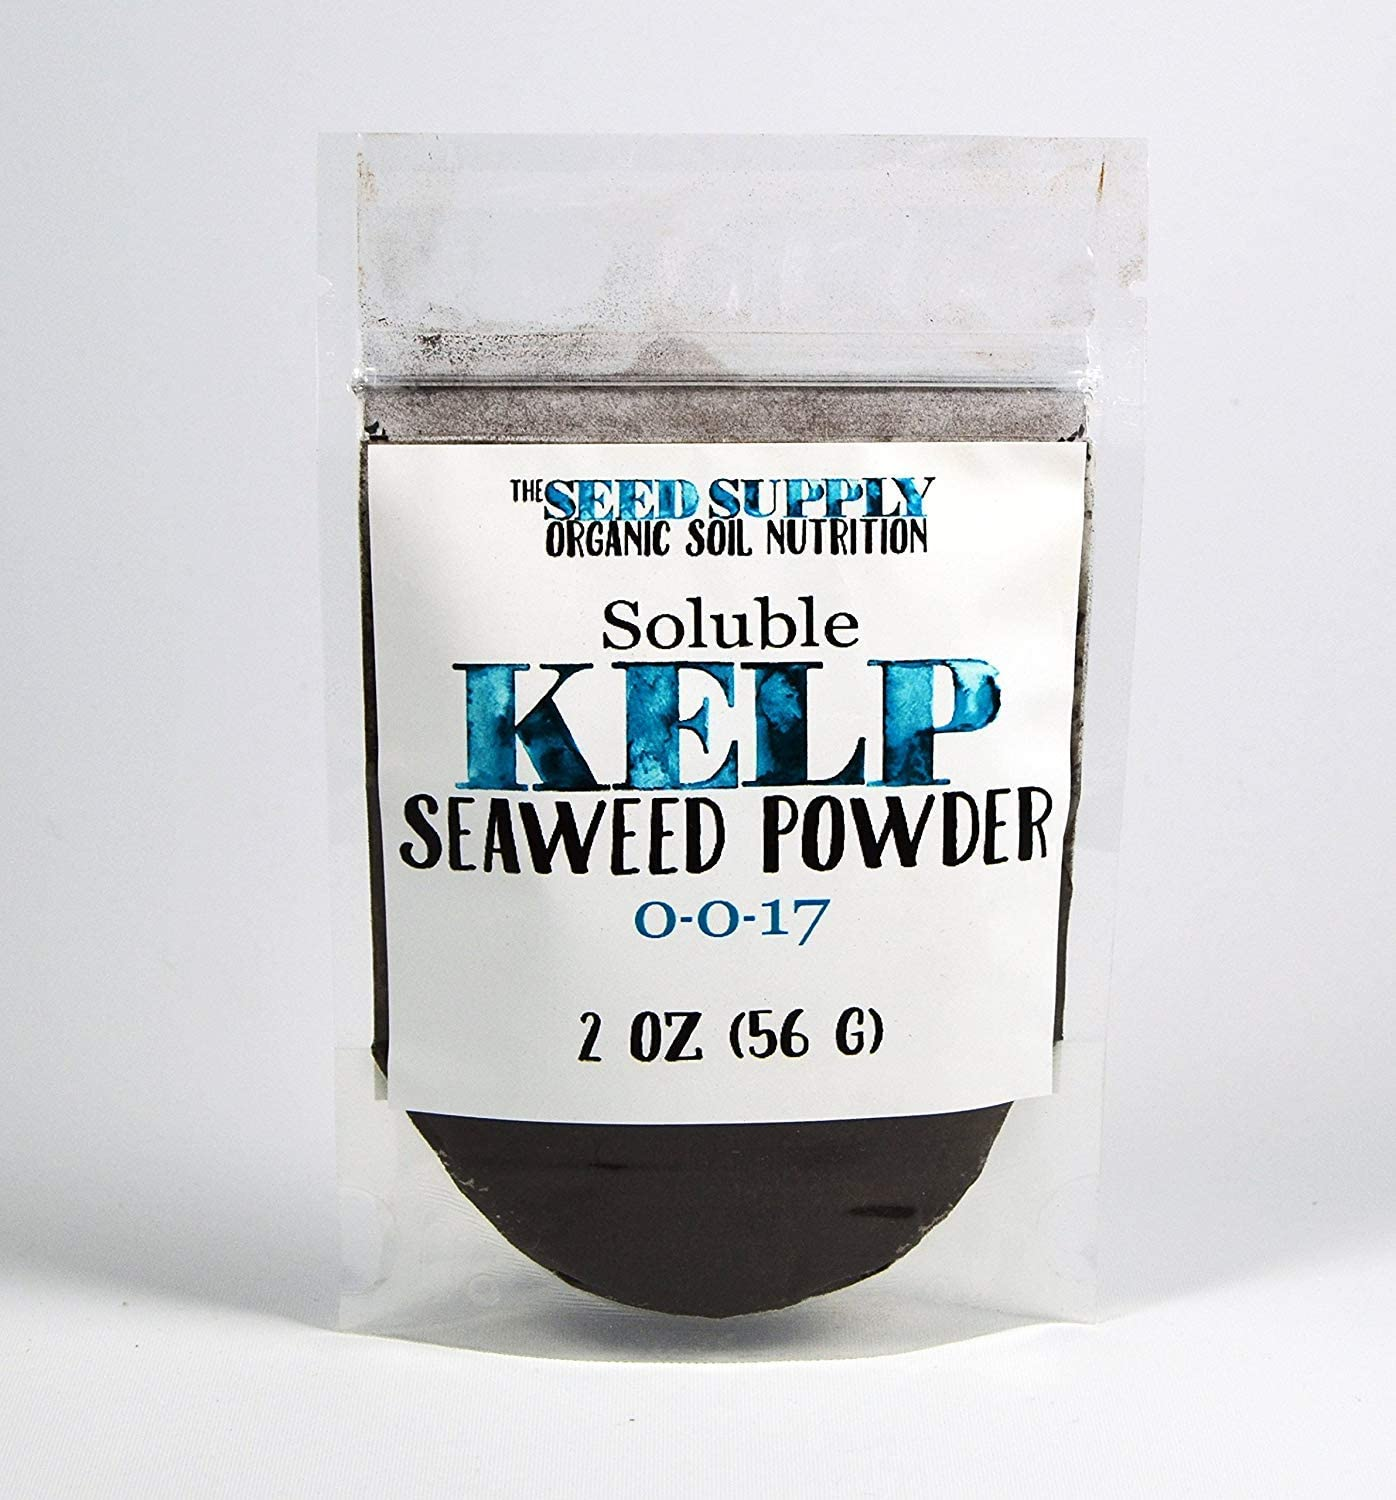 Soluble Kelp Seaweed Powder - 2 Ounces for Plant Root Development and Growth Stimulant 0-0-17 Organic Fertilizer